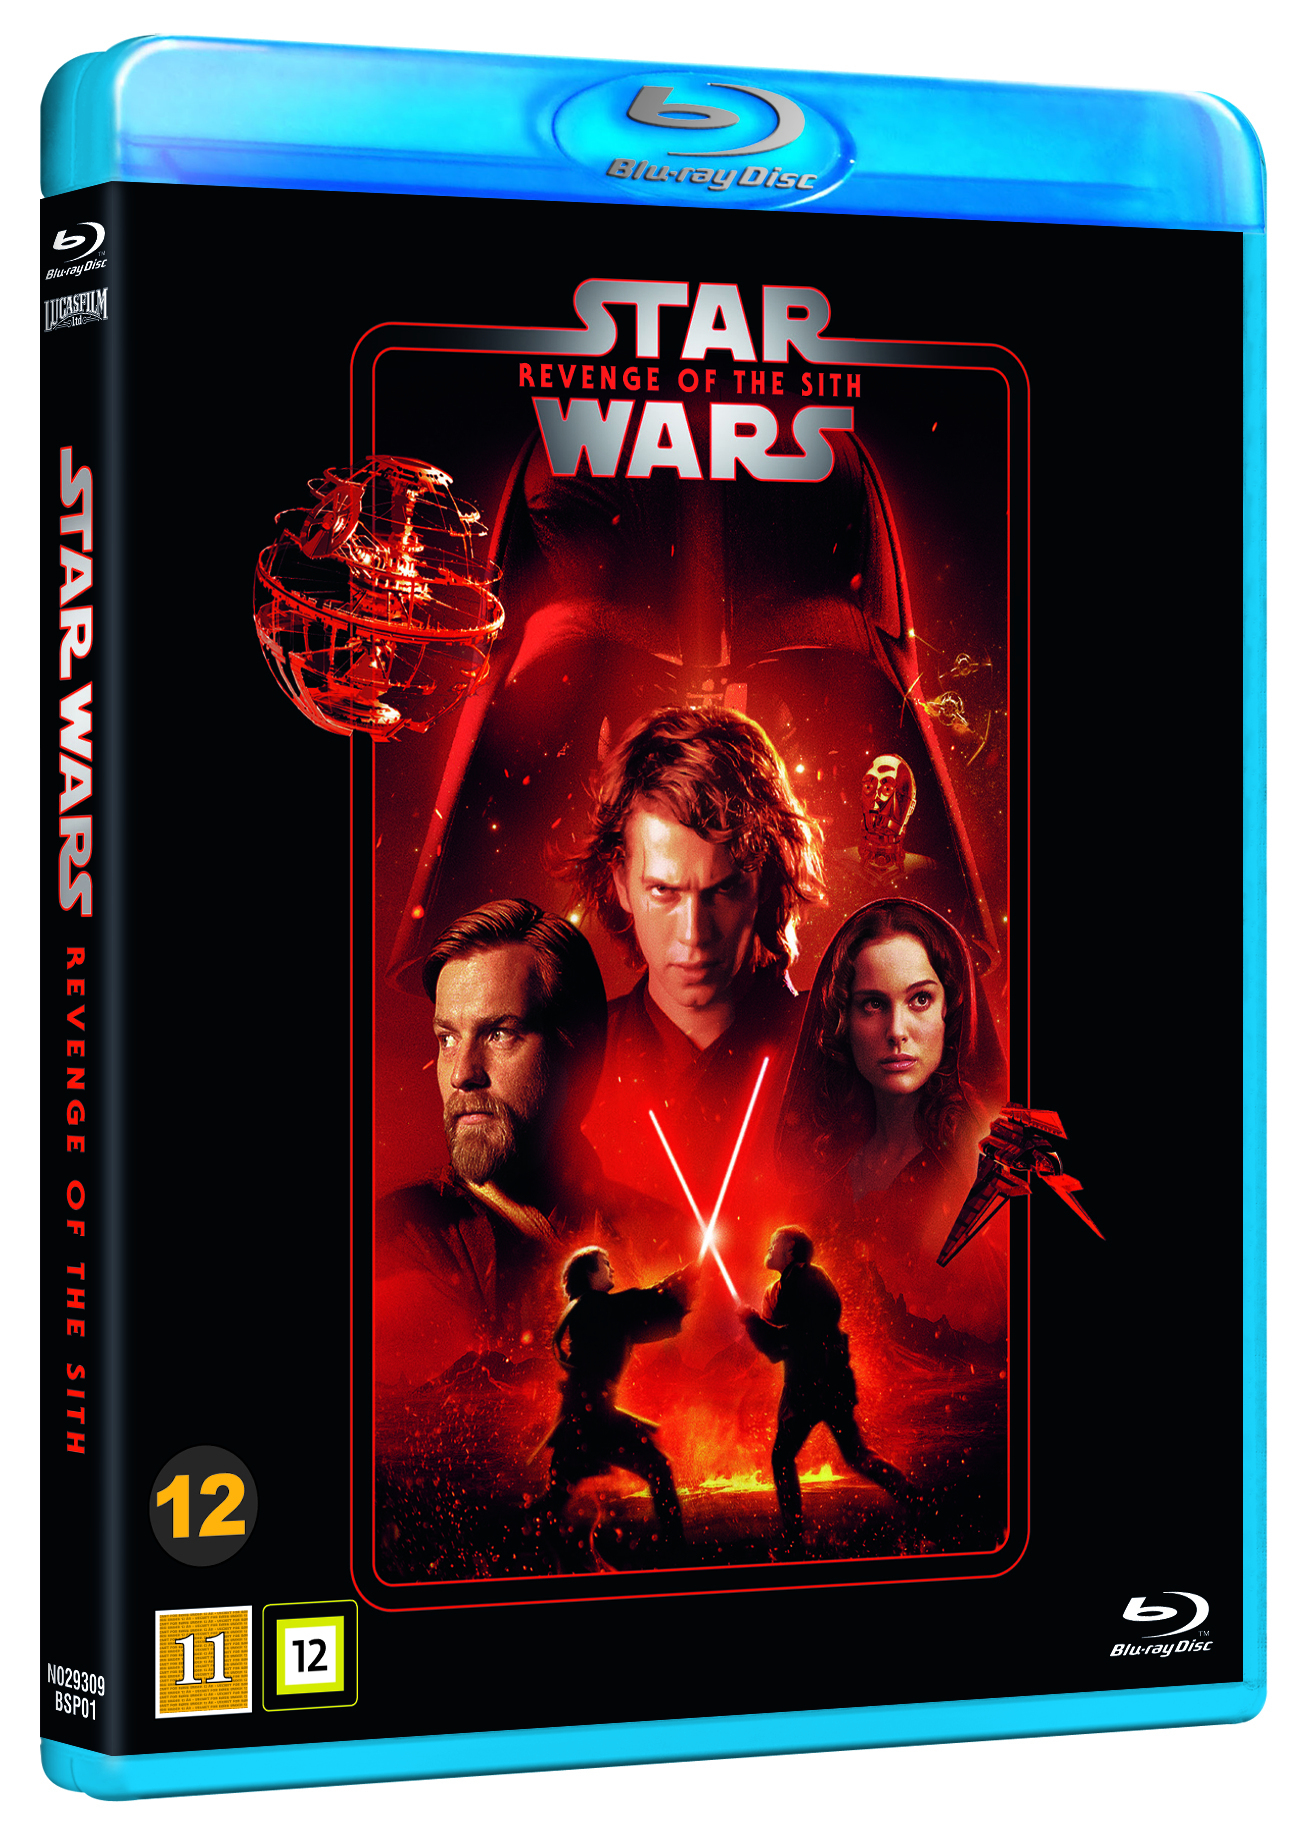 Star Wars: Episode 3 - REVENGE OF THE SITH